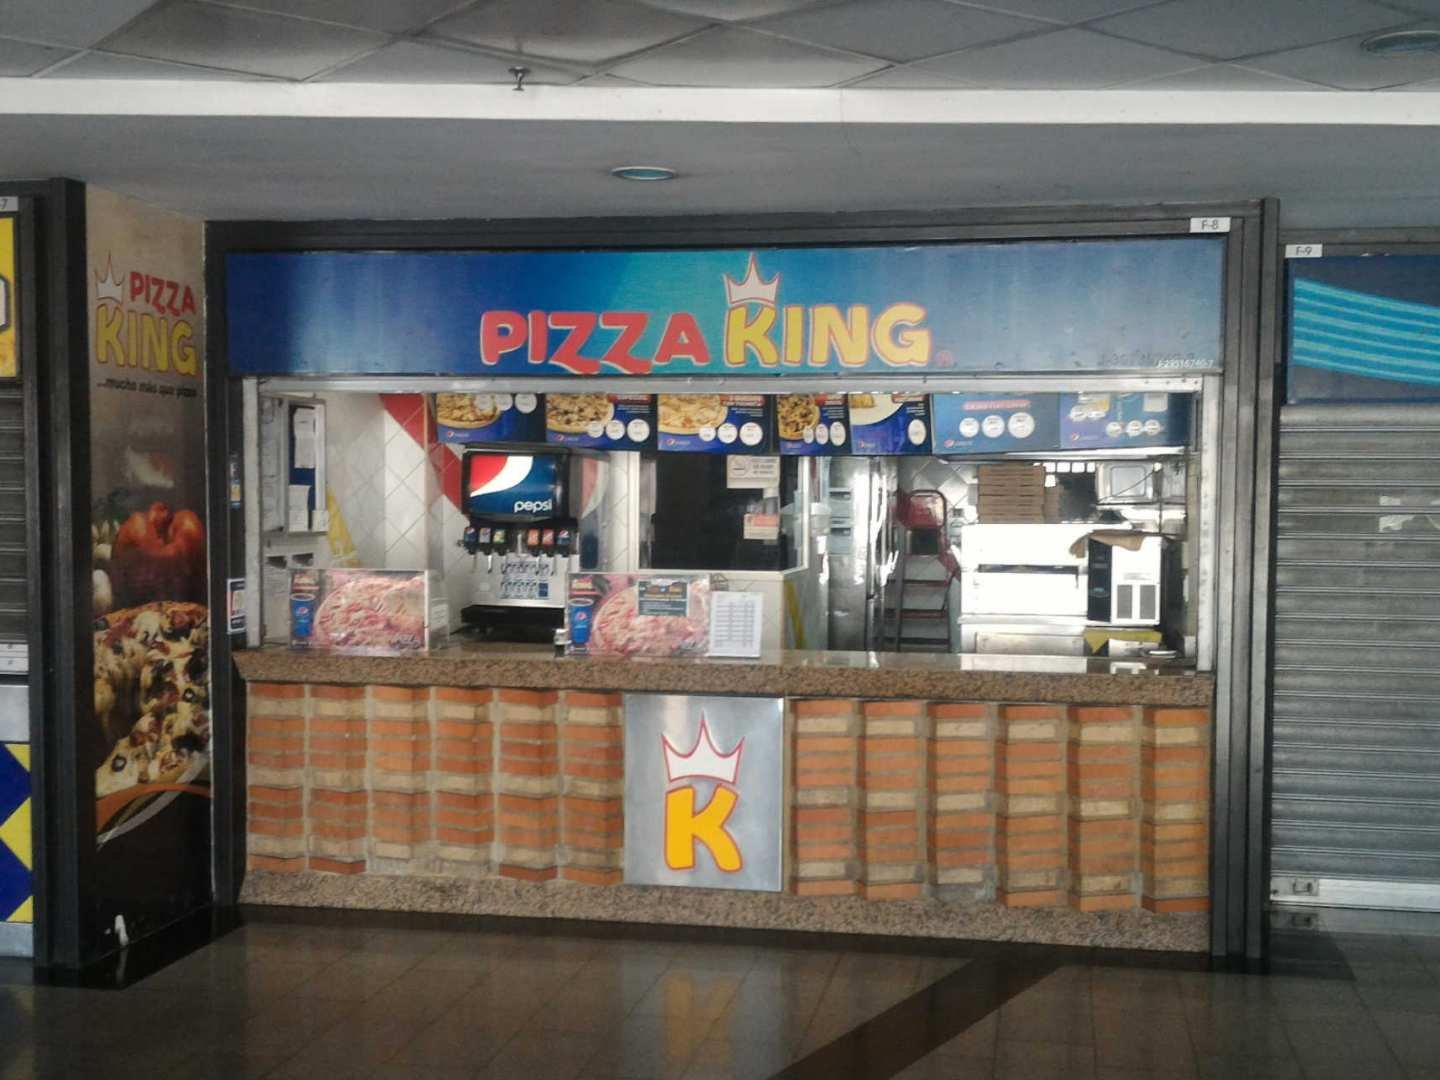 Pizza King (C.C. Multiplaza Paraíso)